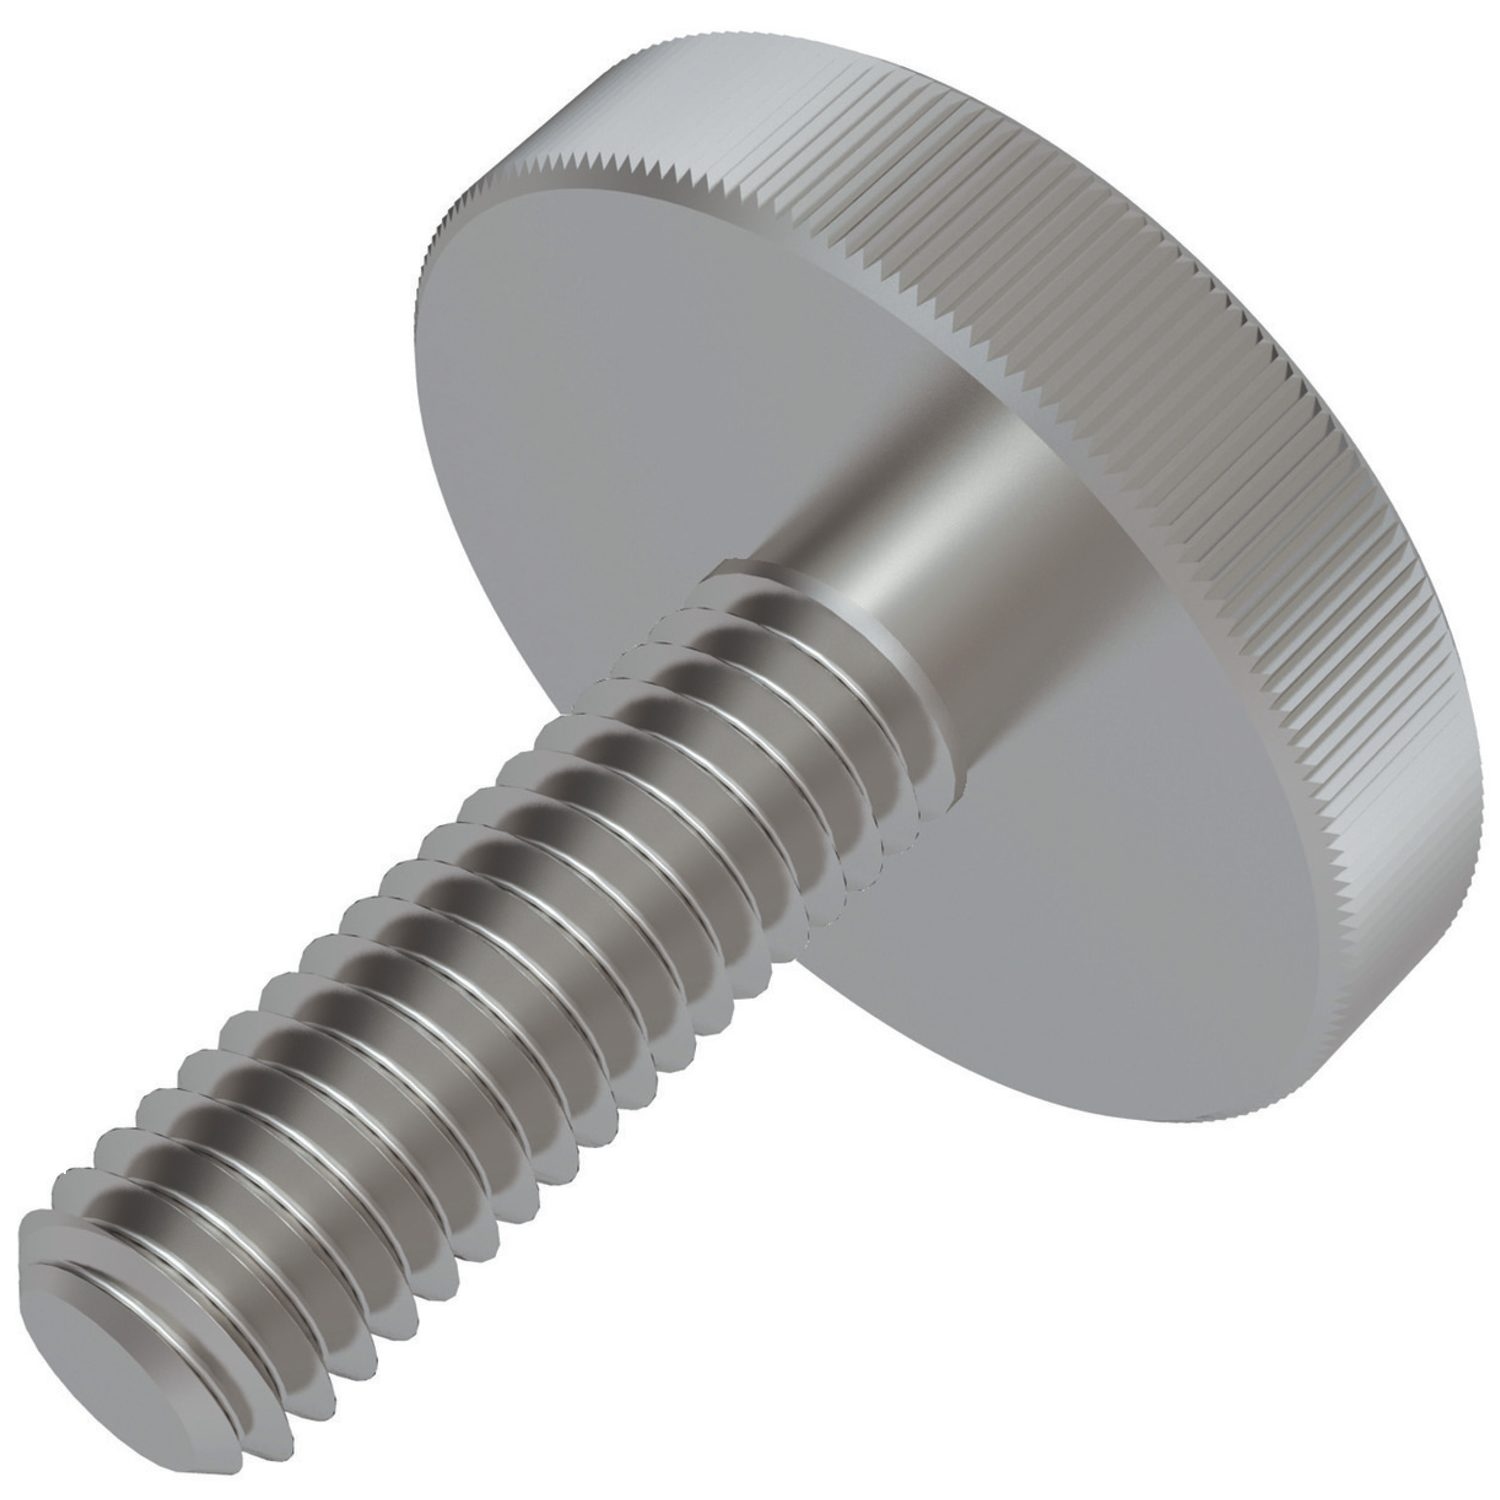 Flat Knurled Thumb Screws Flat Knurled thumb screws manufactured to DIN 653 in steel. Solid one piece construction offers greater strength.